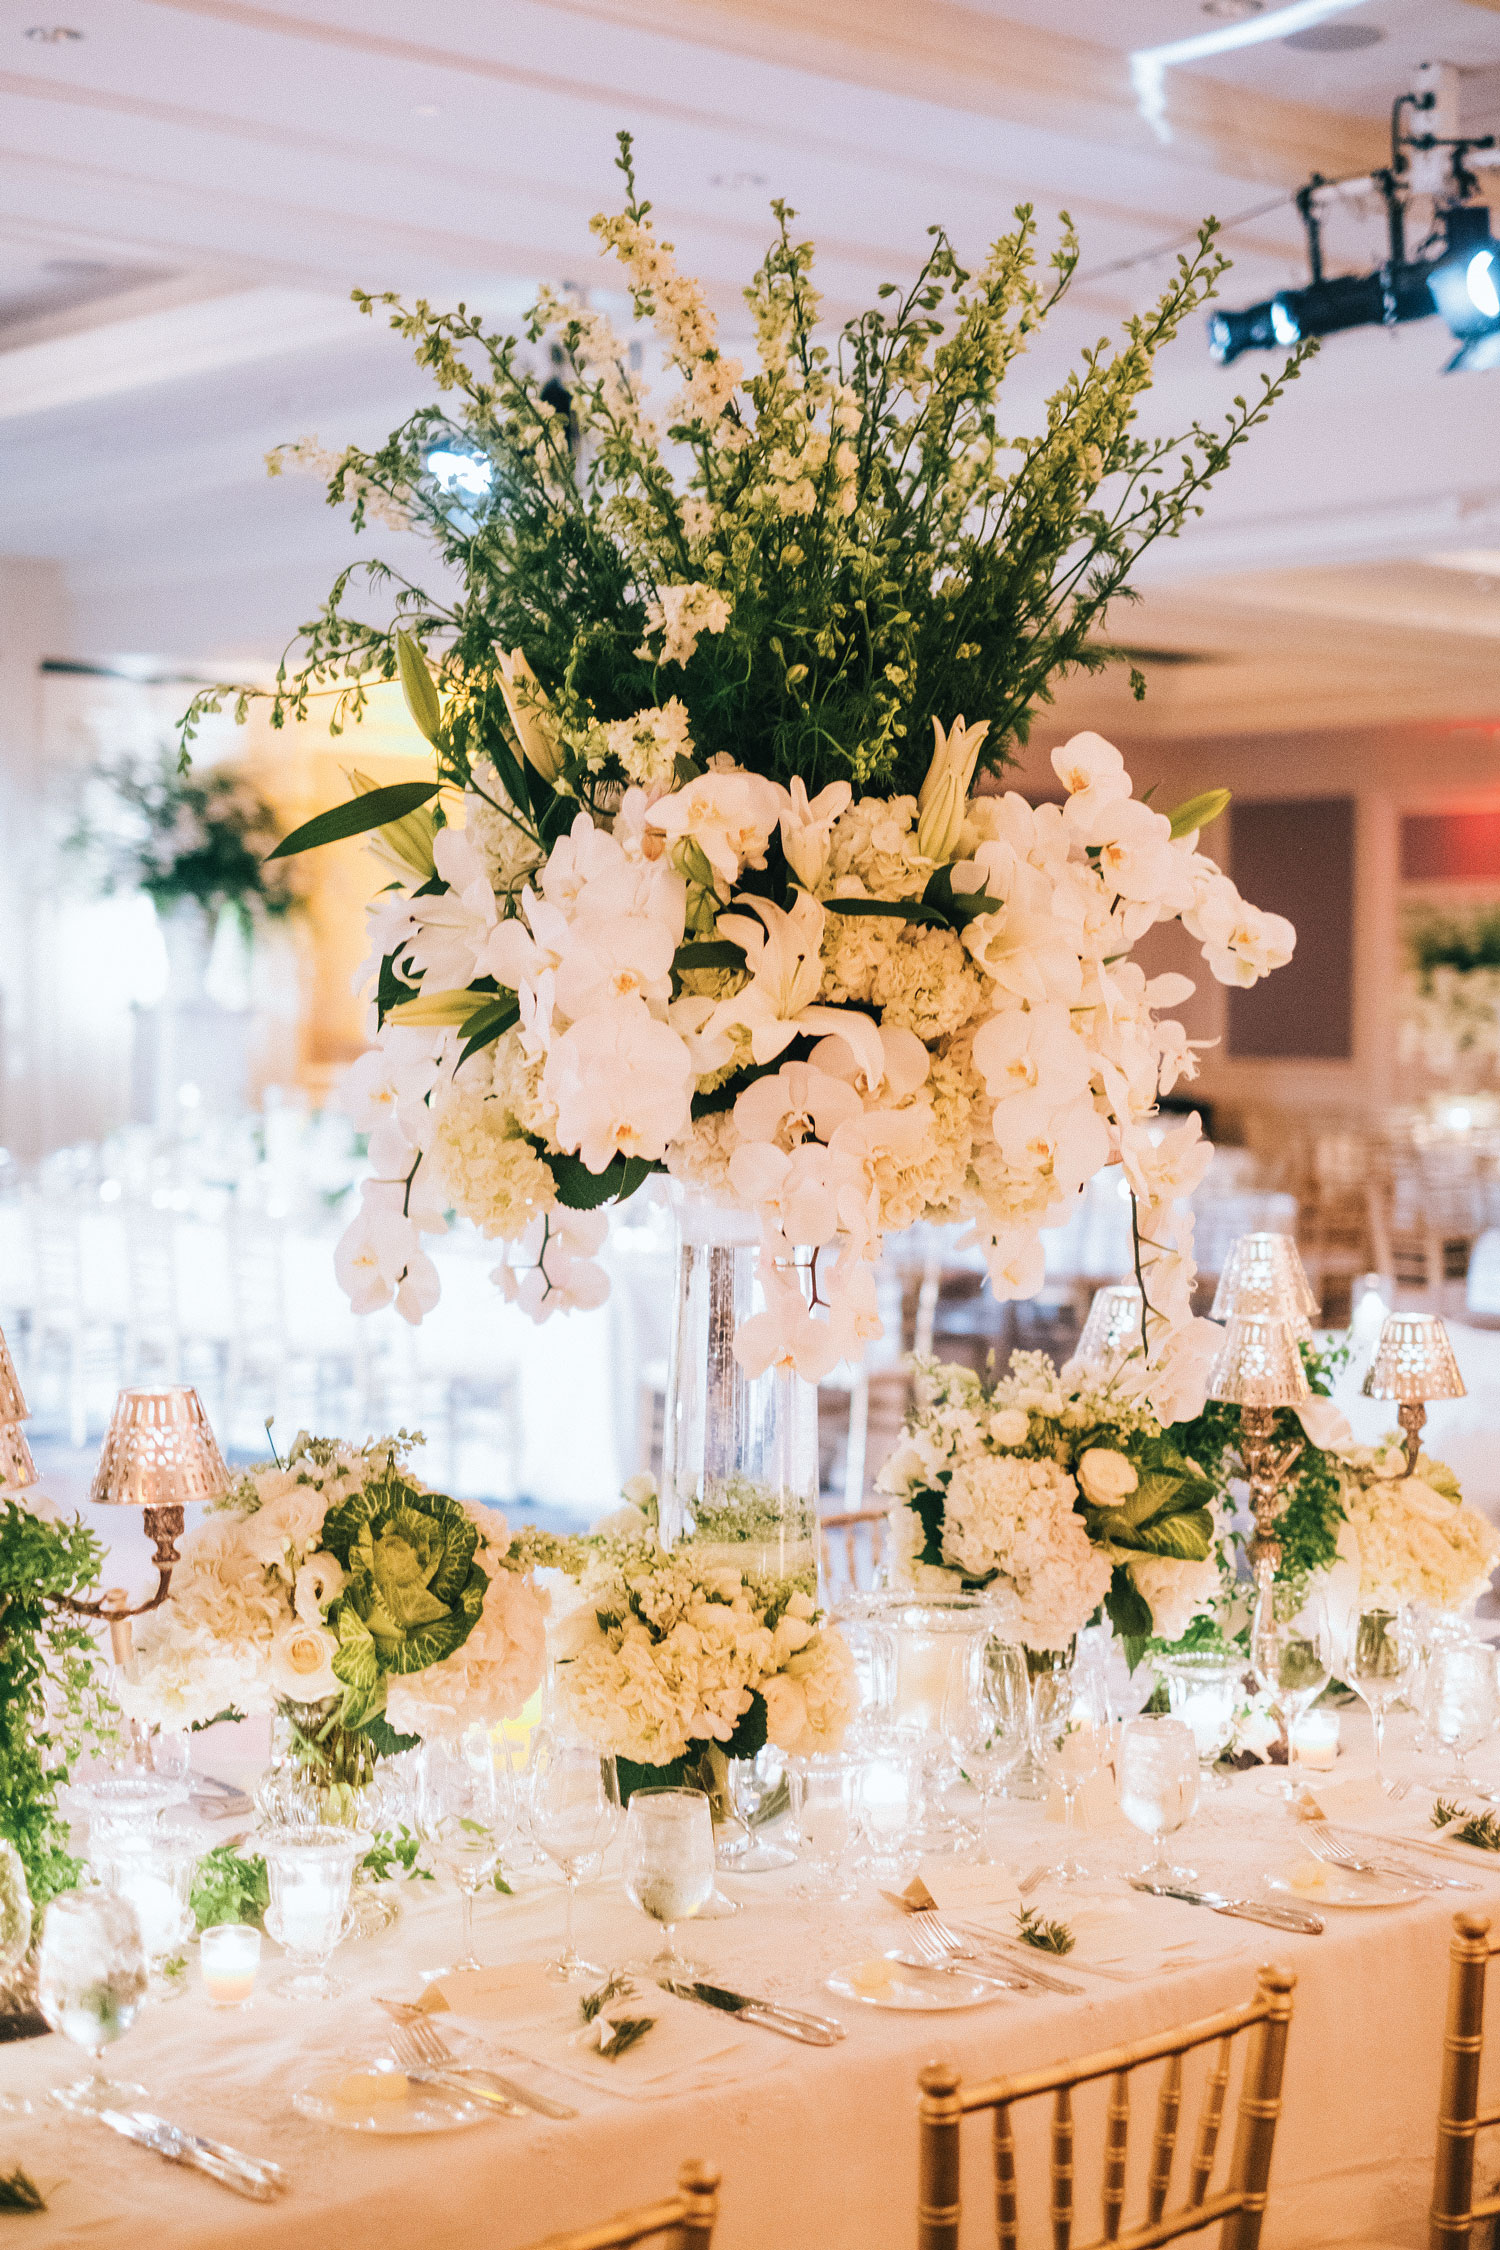 Inside Weddings winter 2018 issue preview real weddings wedding ideas white flowers decor